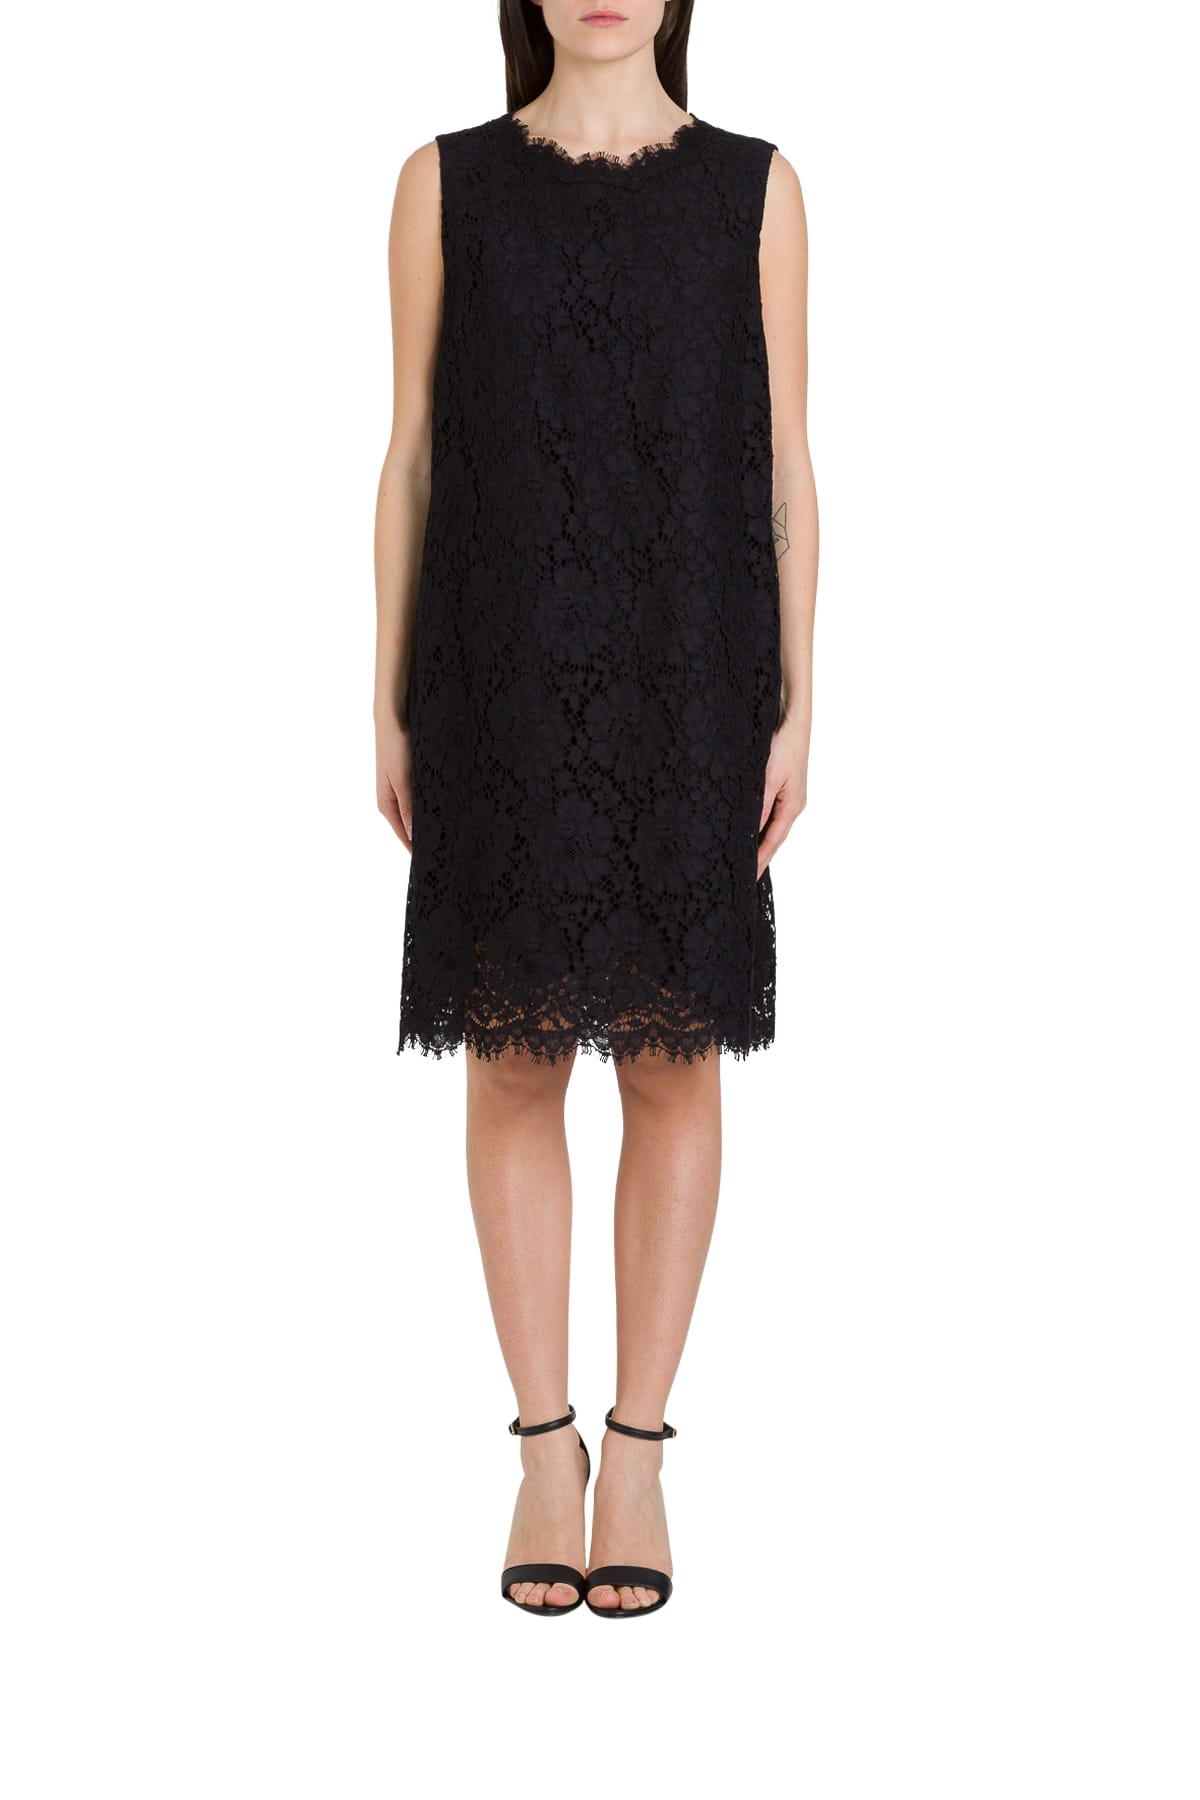 Buy Dolce & Gabbana Lace A-line Dress online, shop Dolce & Gabbana with free shipping